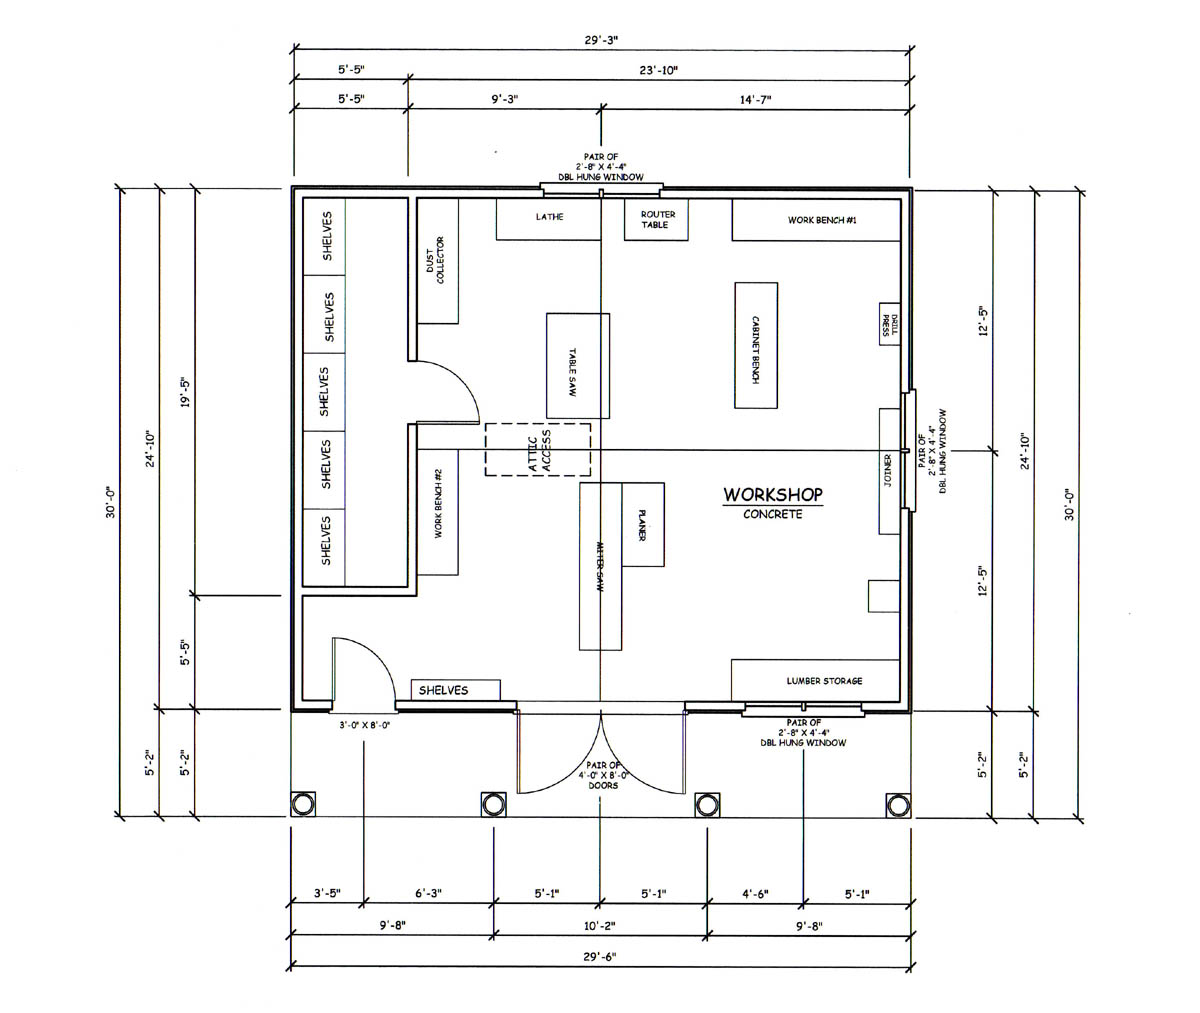 Woodworking layout tips with brilliant photo in australia for Workshop floor plans